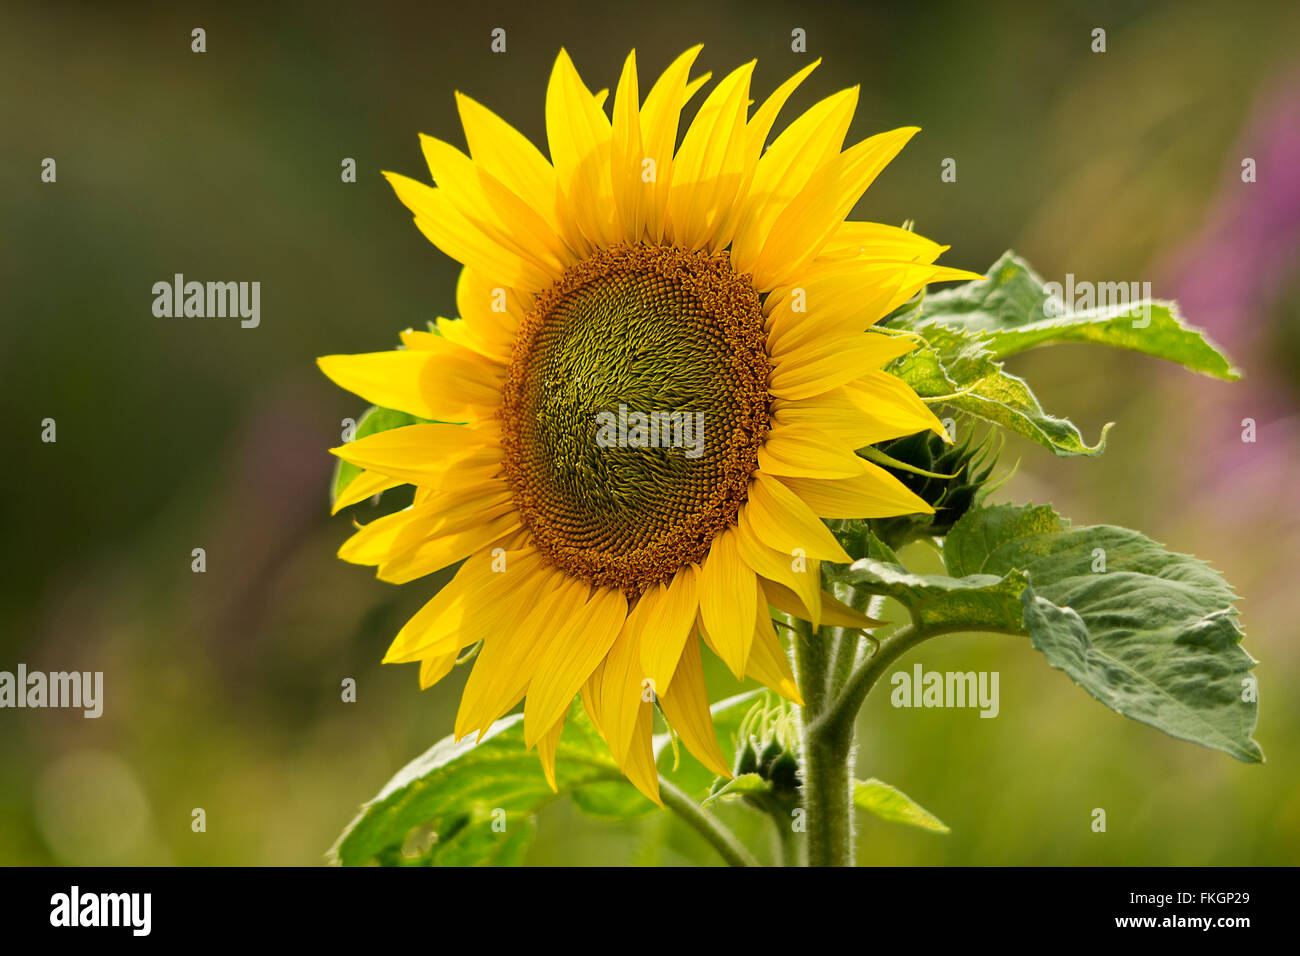 Sun Flower Helianthus Annuus Large Tall Plant Bright Yellow Flower